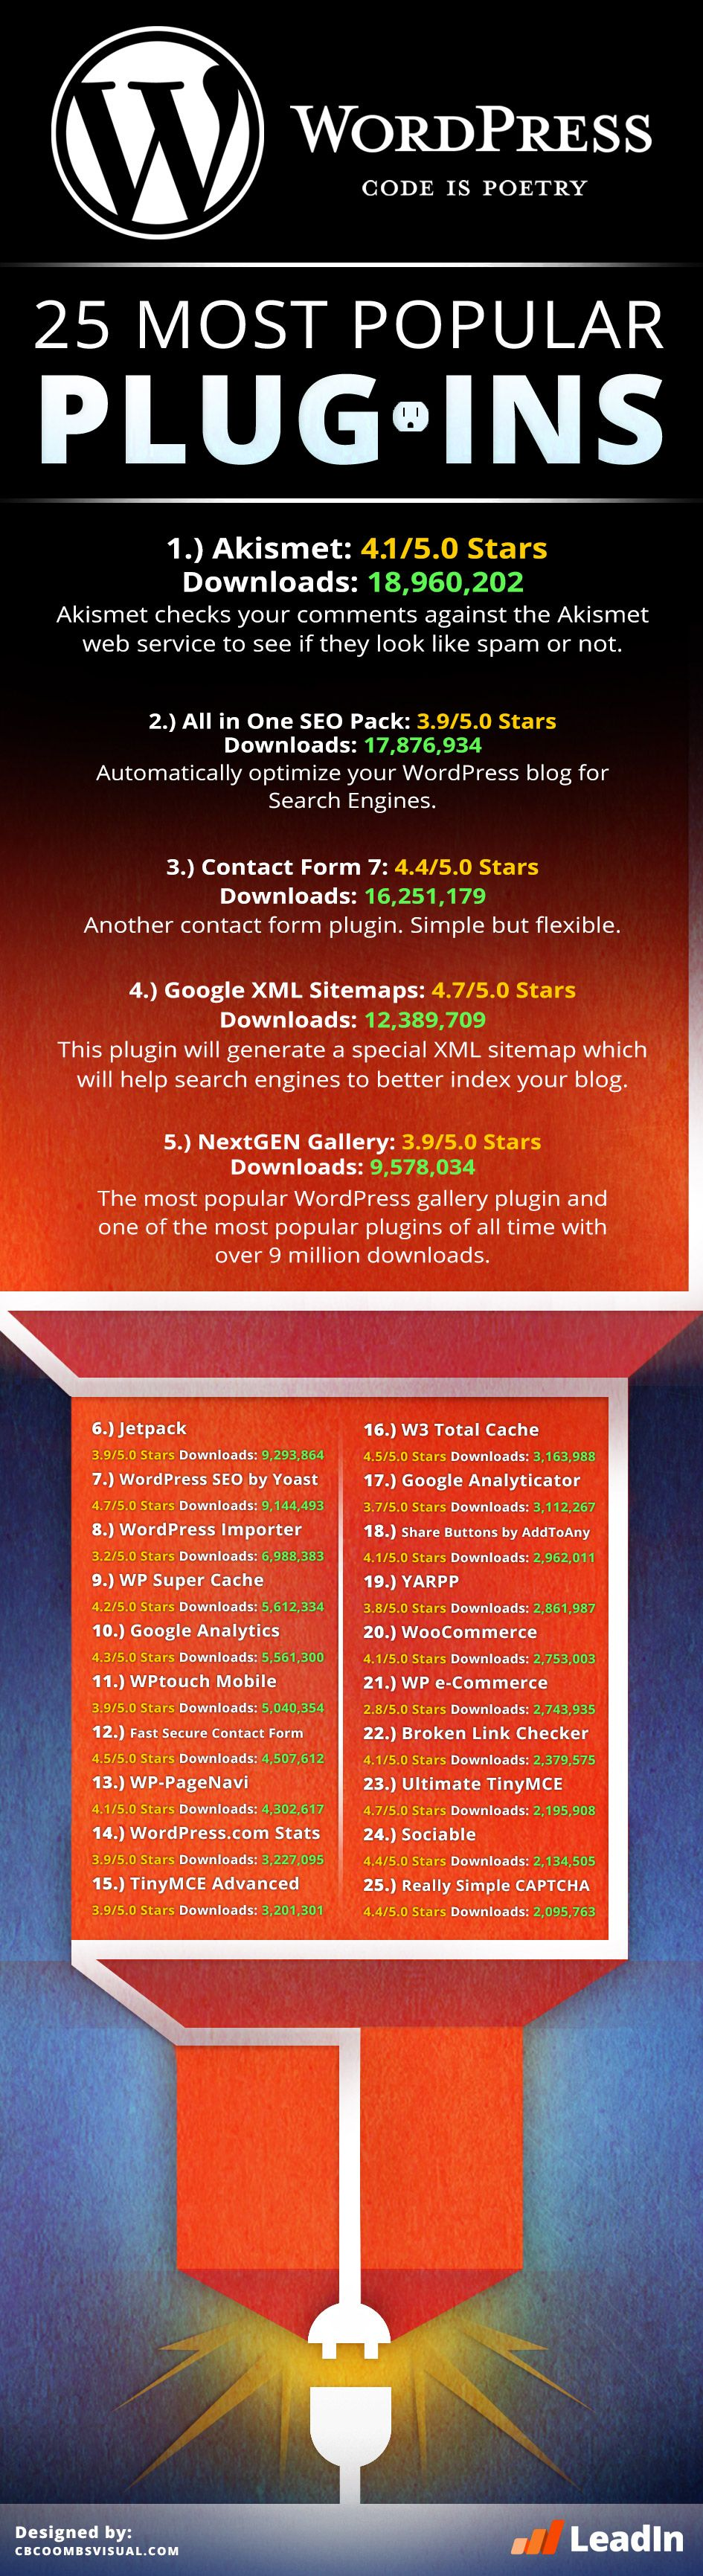 [INFOGRAPHIC] The Top 25 WordPress Plugins: Akismet; All in One website positioning; Contact Make 7;…